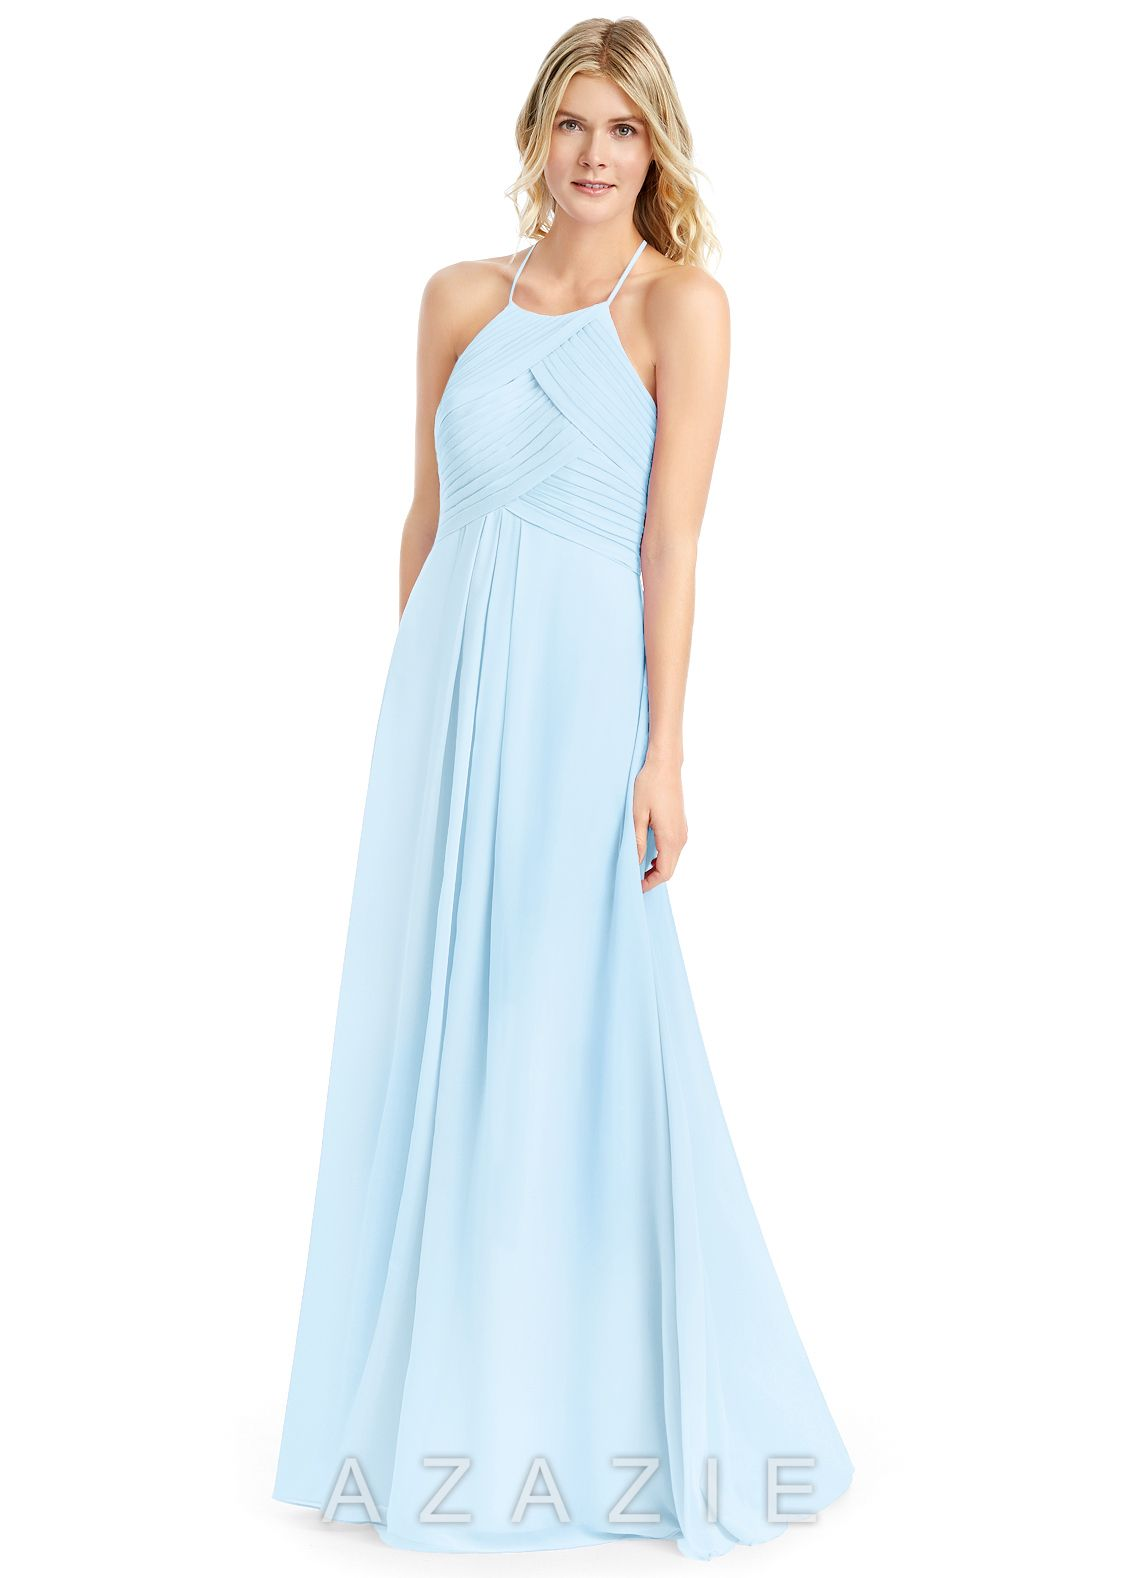 aad2200936 Shop Azazie Bridesmaid Dress - Ginger in Chiffon. Find the perfect  made-to-order bridesmaid dresses for your bridal party in your favorite  color